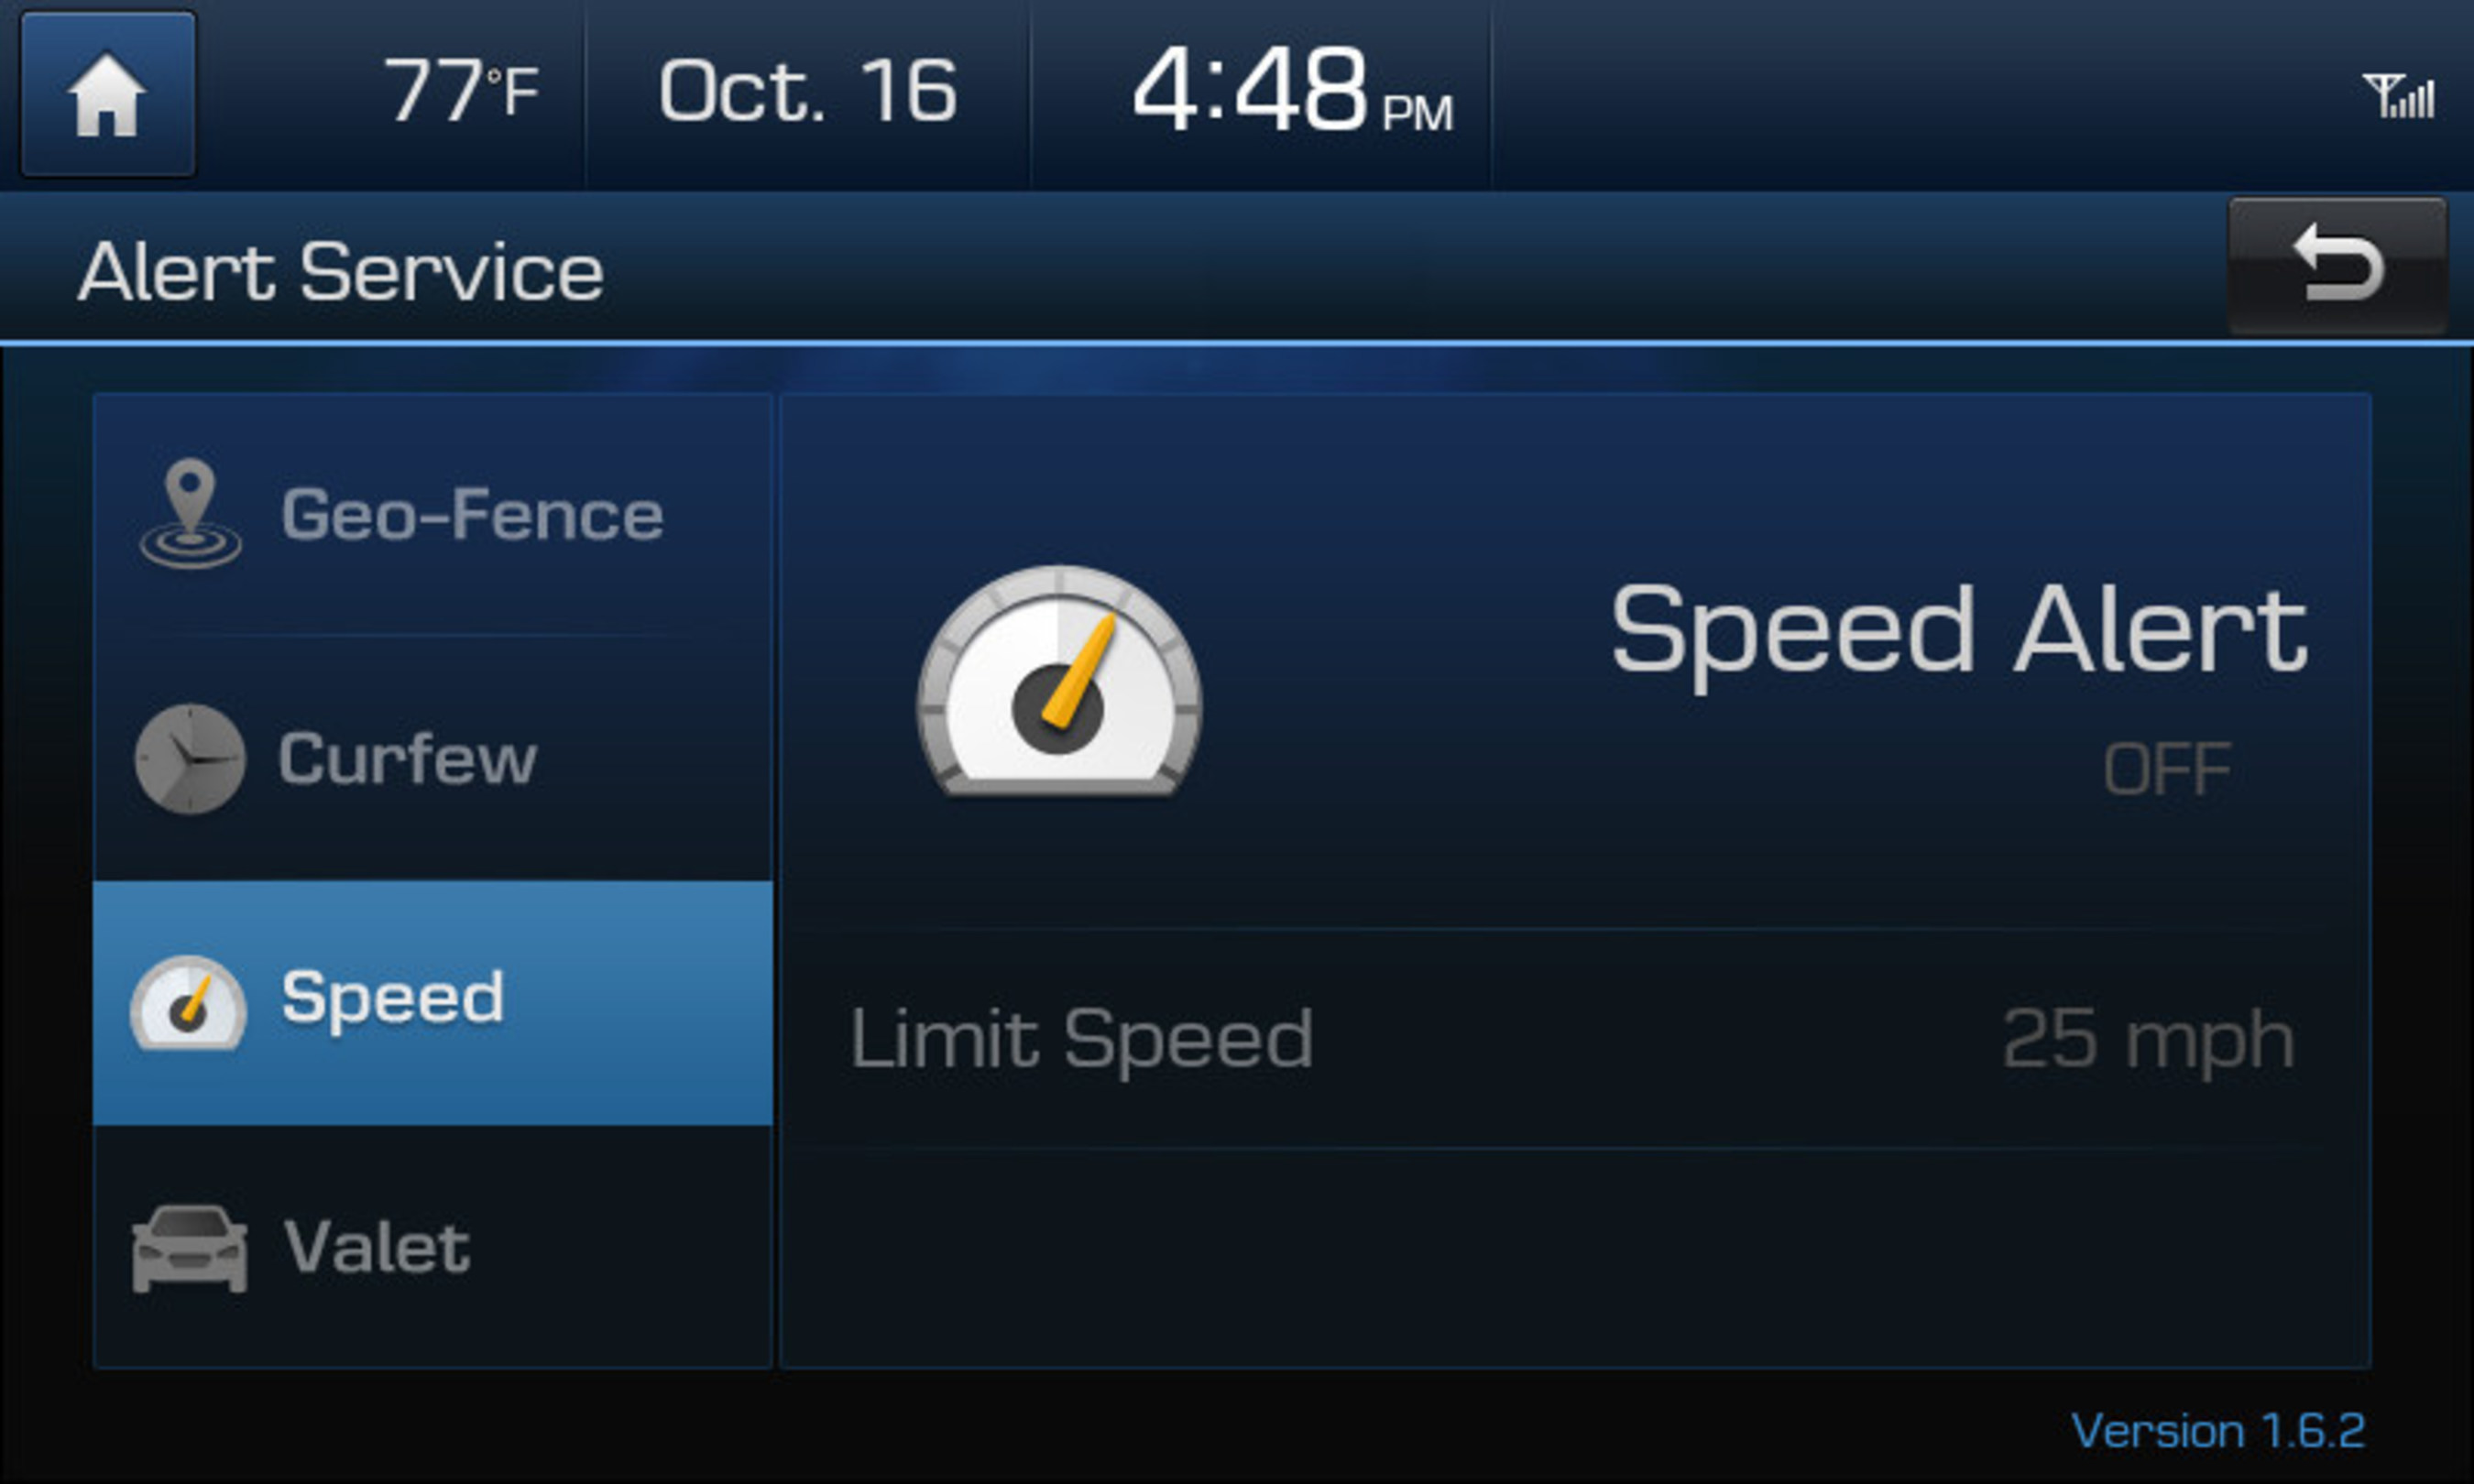 Hyundai Blue Link Vehicle Safeguards Alerts In-Vehicle App Speed Alert on the multimedia screen of a 2015 Azera